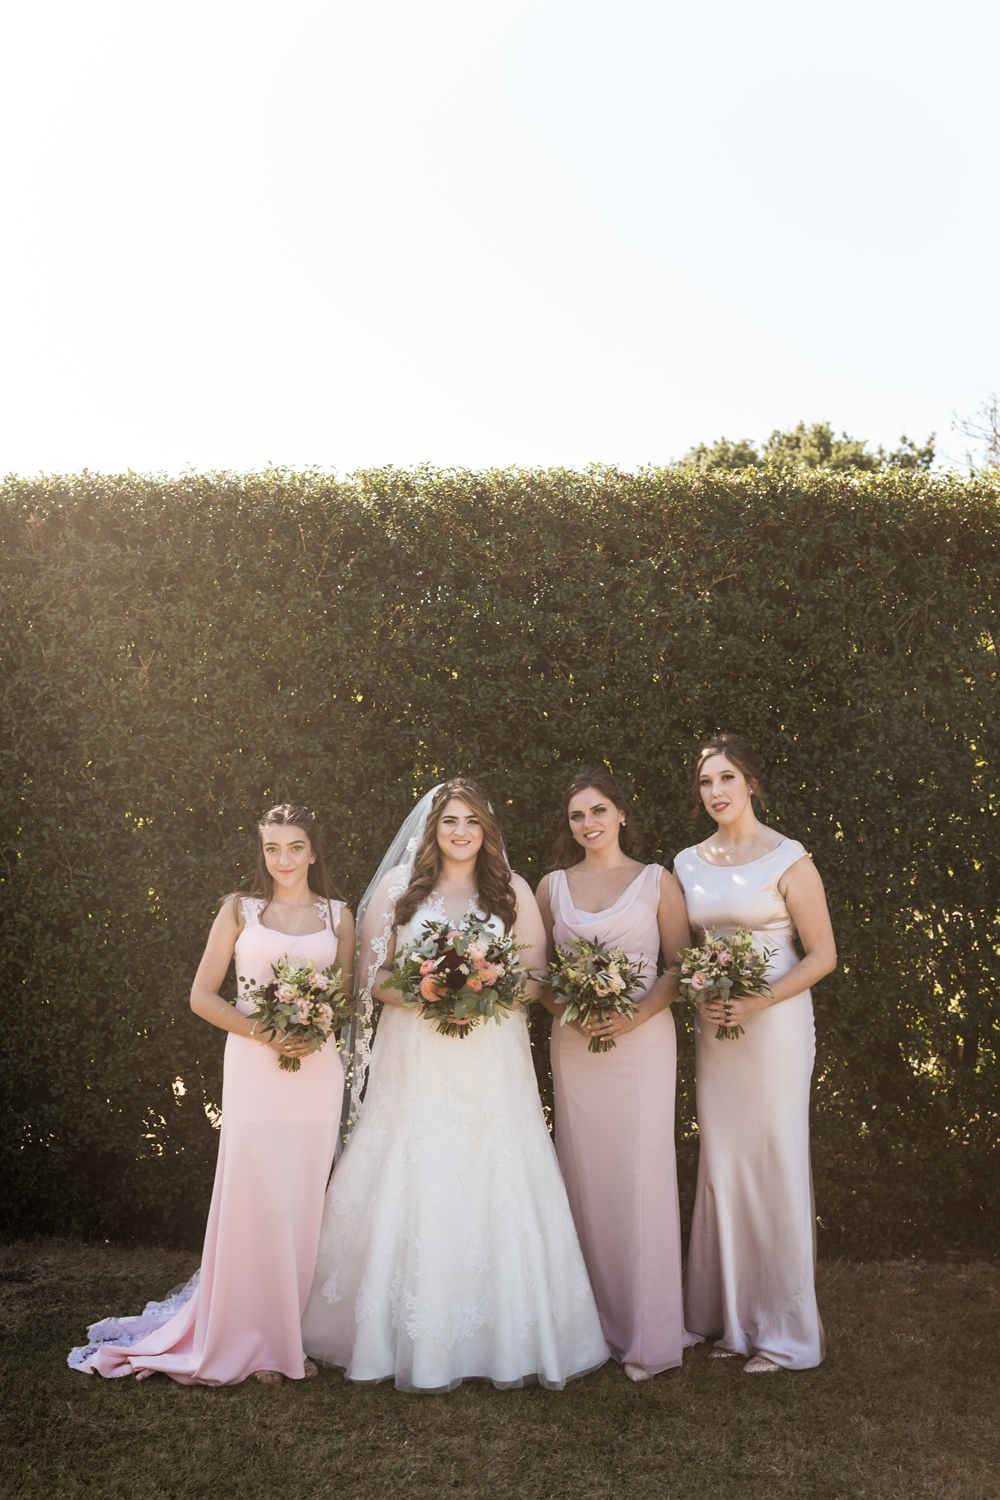 Bridesmaids Bridesmaid Dress Dresses Pink Haughley Park Barn Wedding Him and Her Wedding Photography